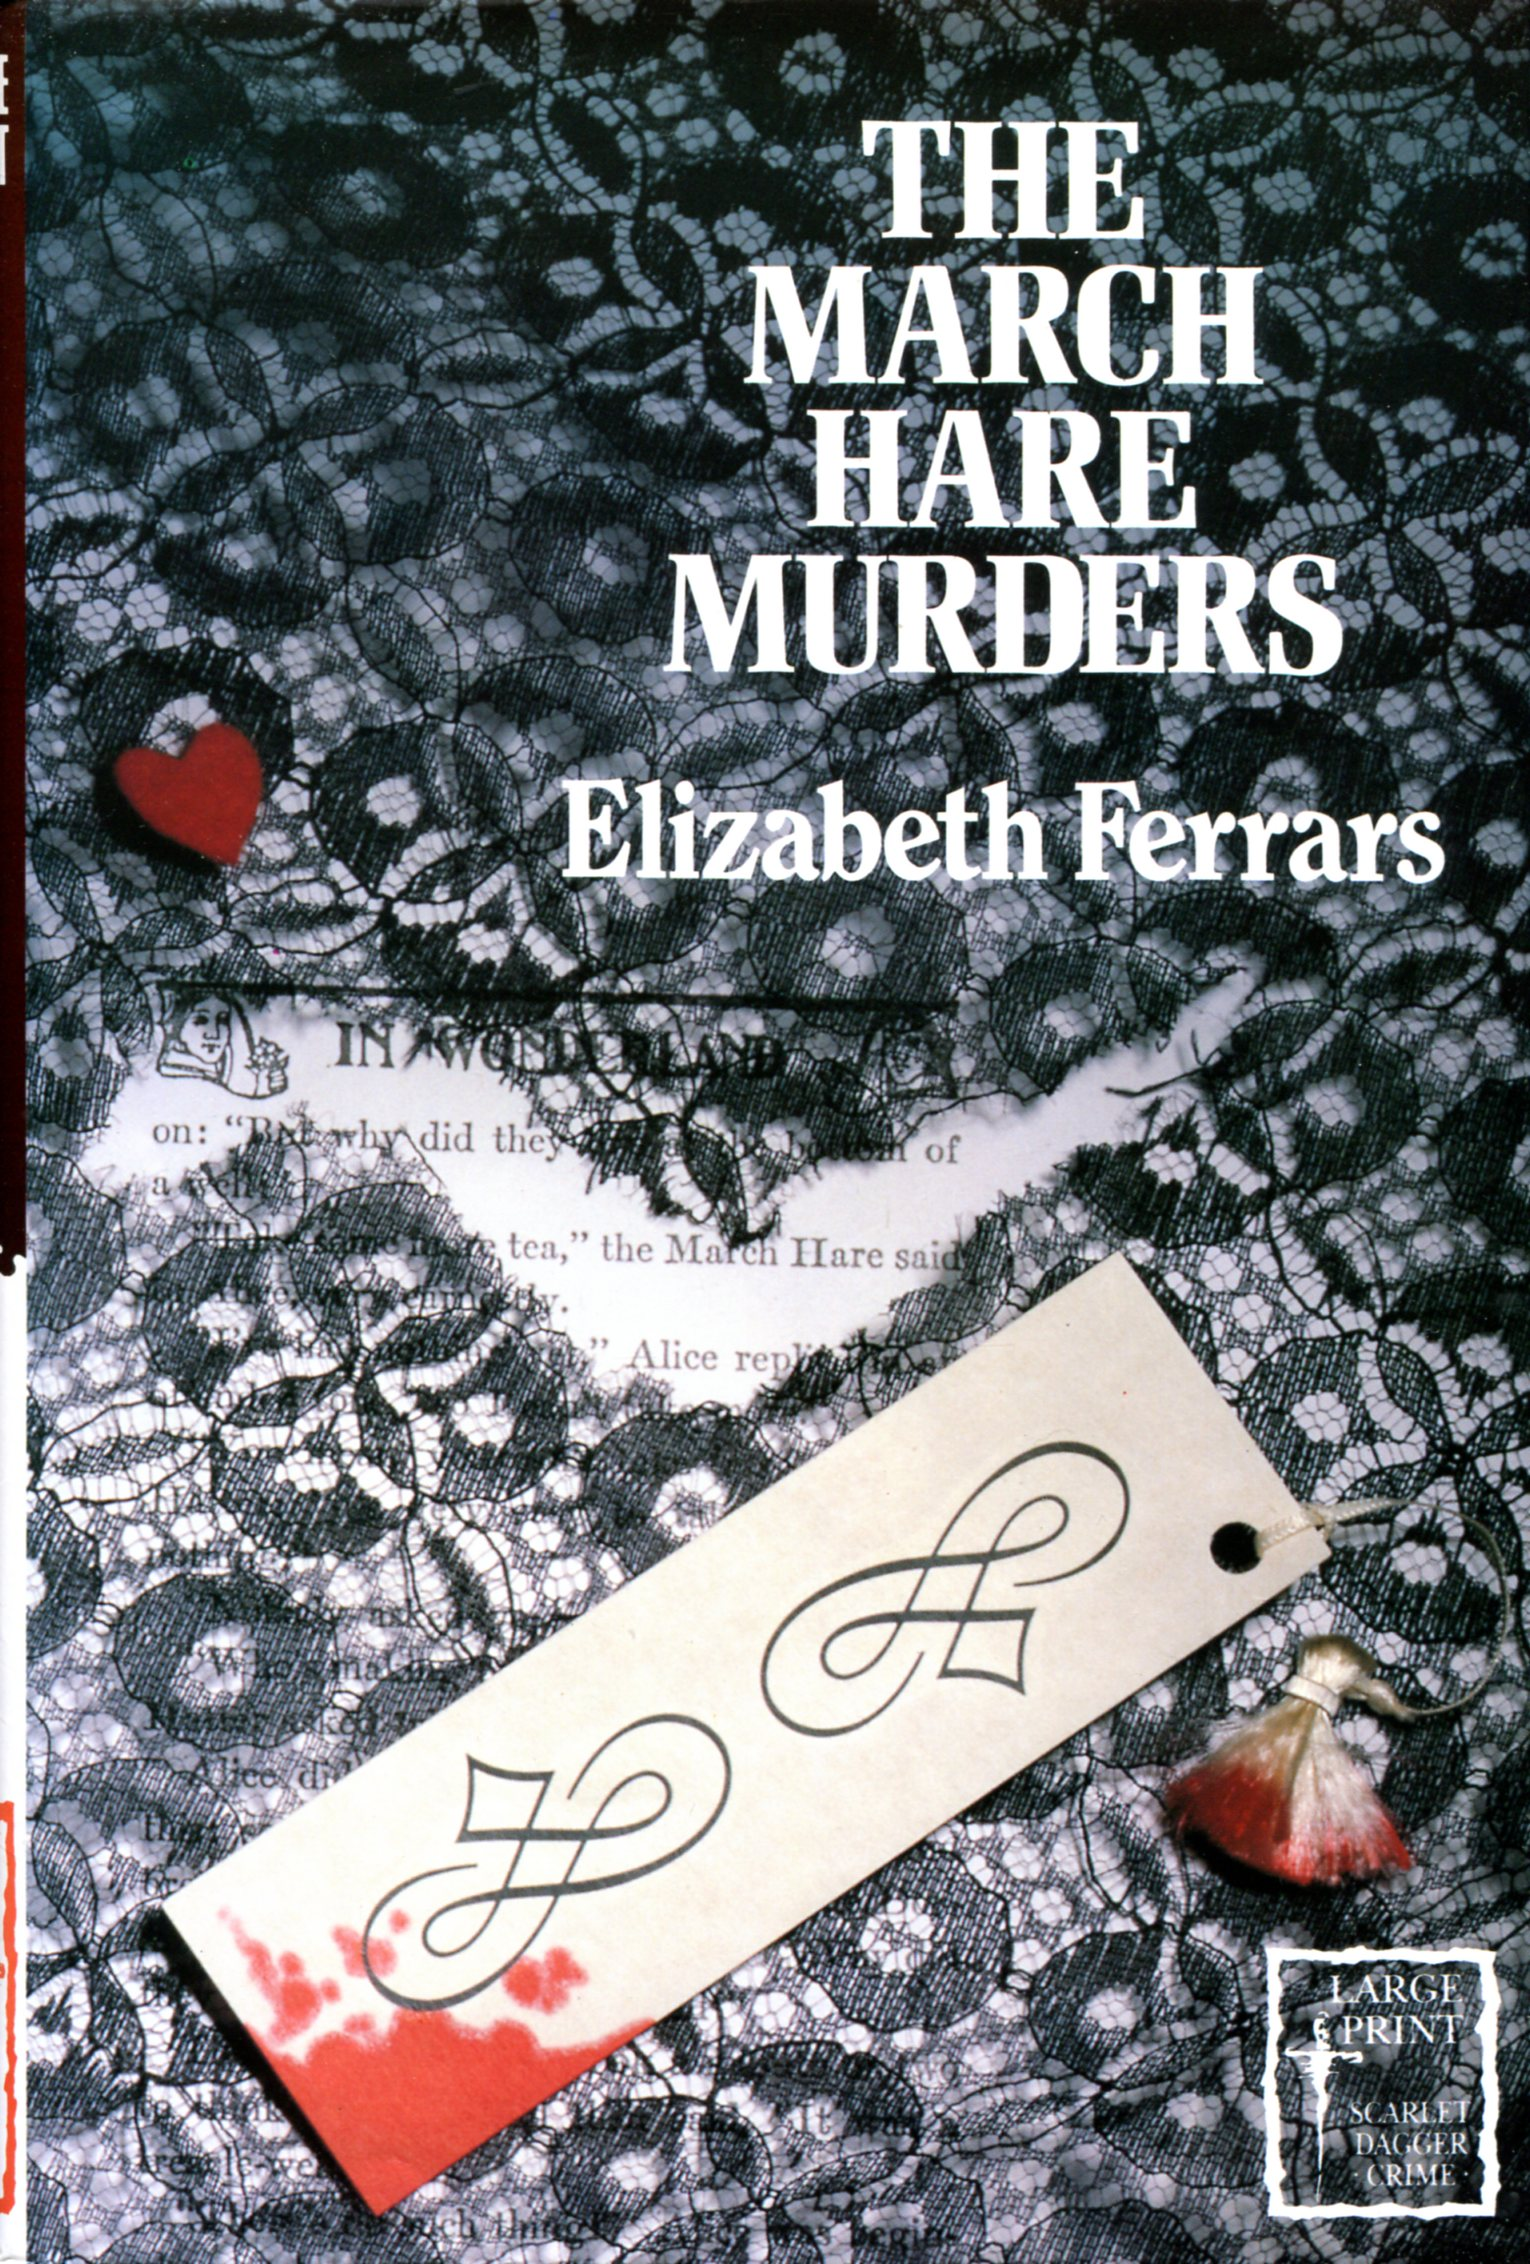 The March Hare Murders